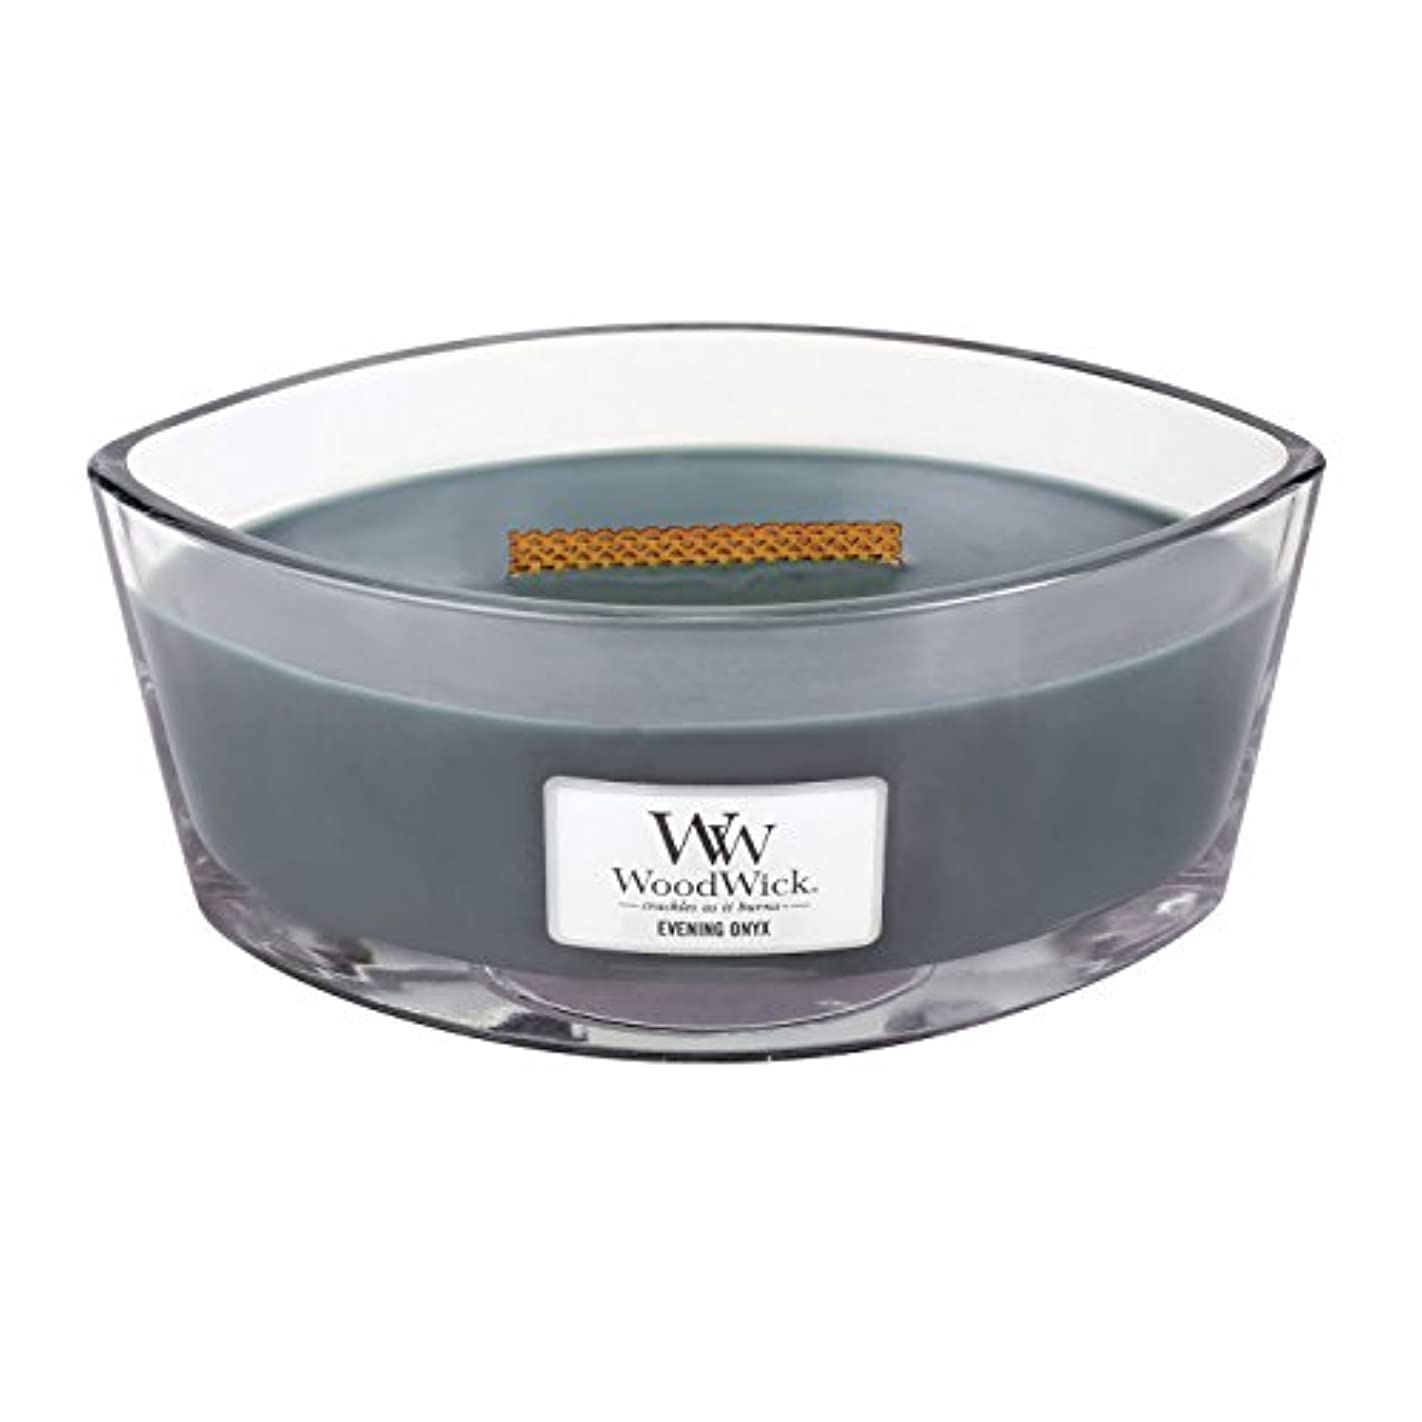 WoodWick EVENING ONYX, Highly Scented Candle, Ellipse Glass Jar with Original HearthWick Flame, Large 18cm, 470ml